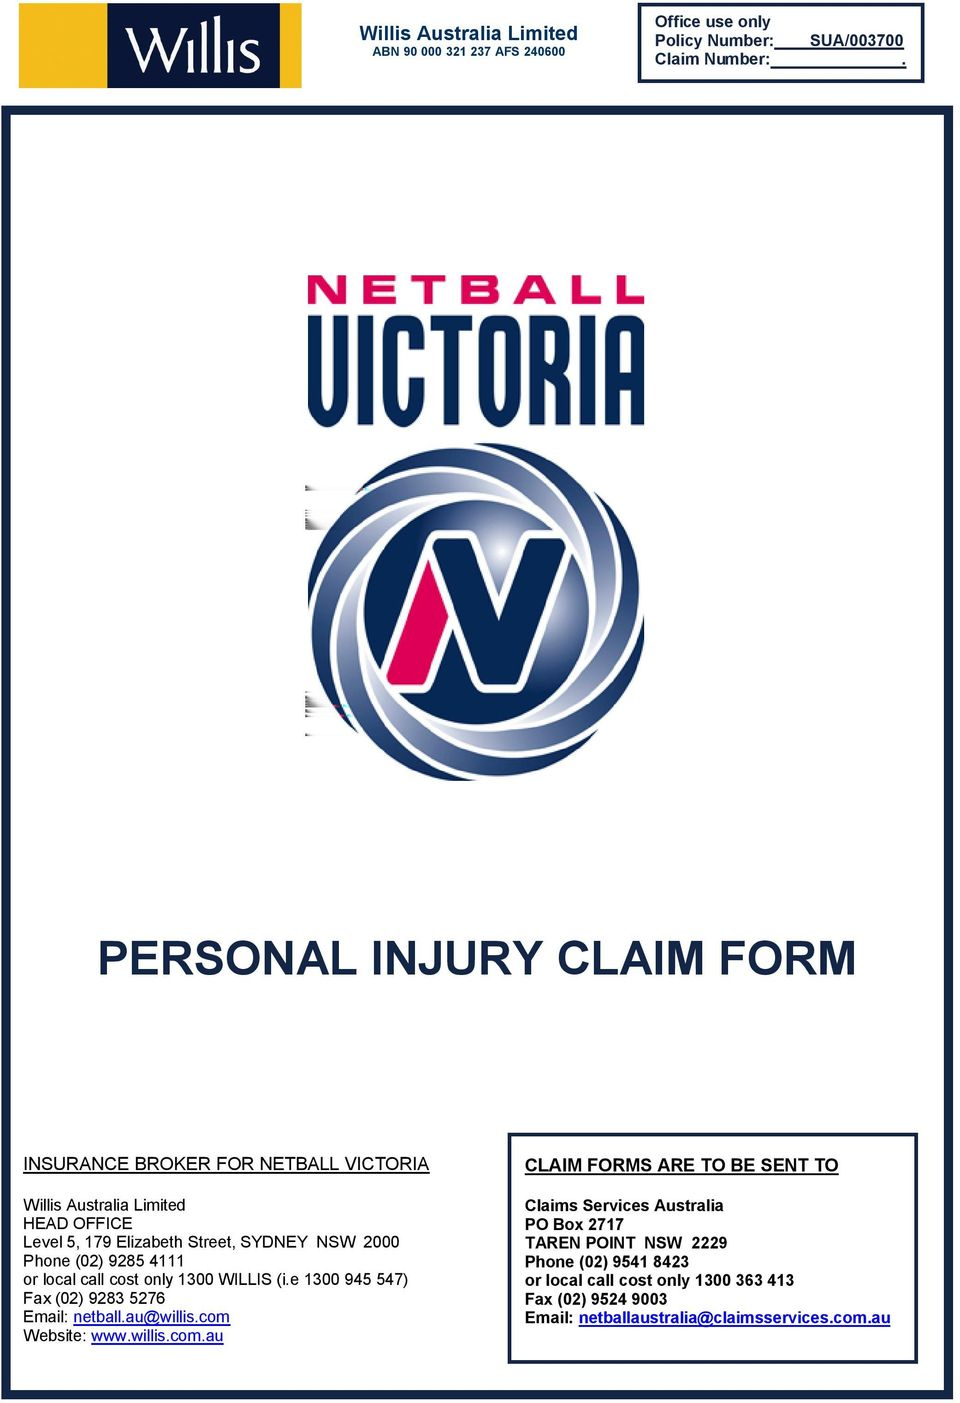 (02) 9285 4111 or local call cost only 1300 WILLIS (i.e 1300 945 547) Fax (02) 9283 5276 Email: netball.au@willis.com